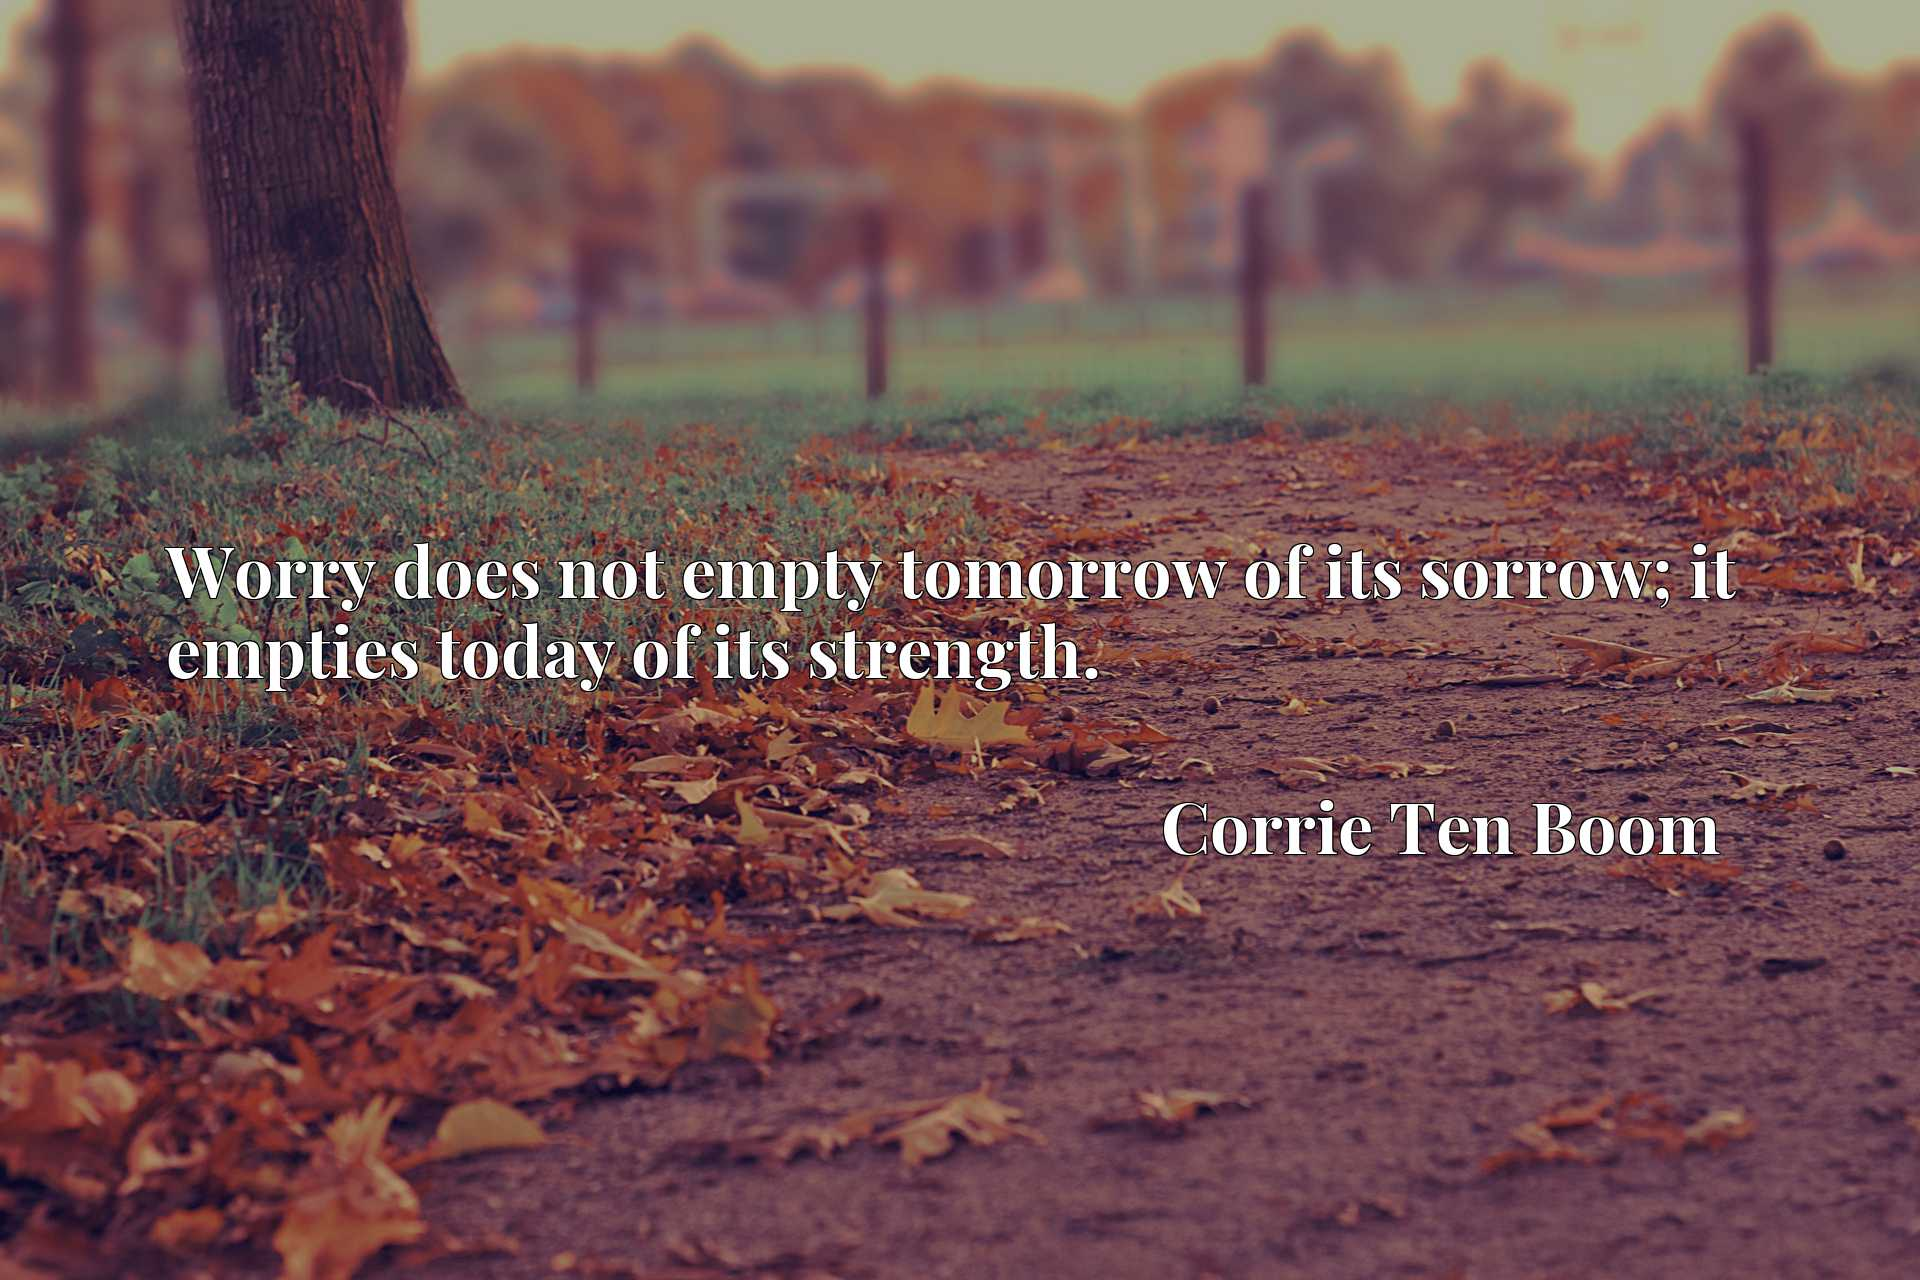 Worry does not empty tomorrow of its sorrow; it empties today of its strength.